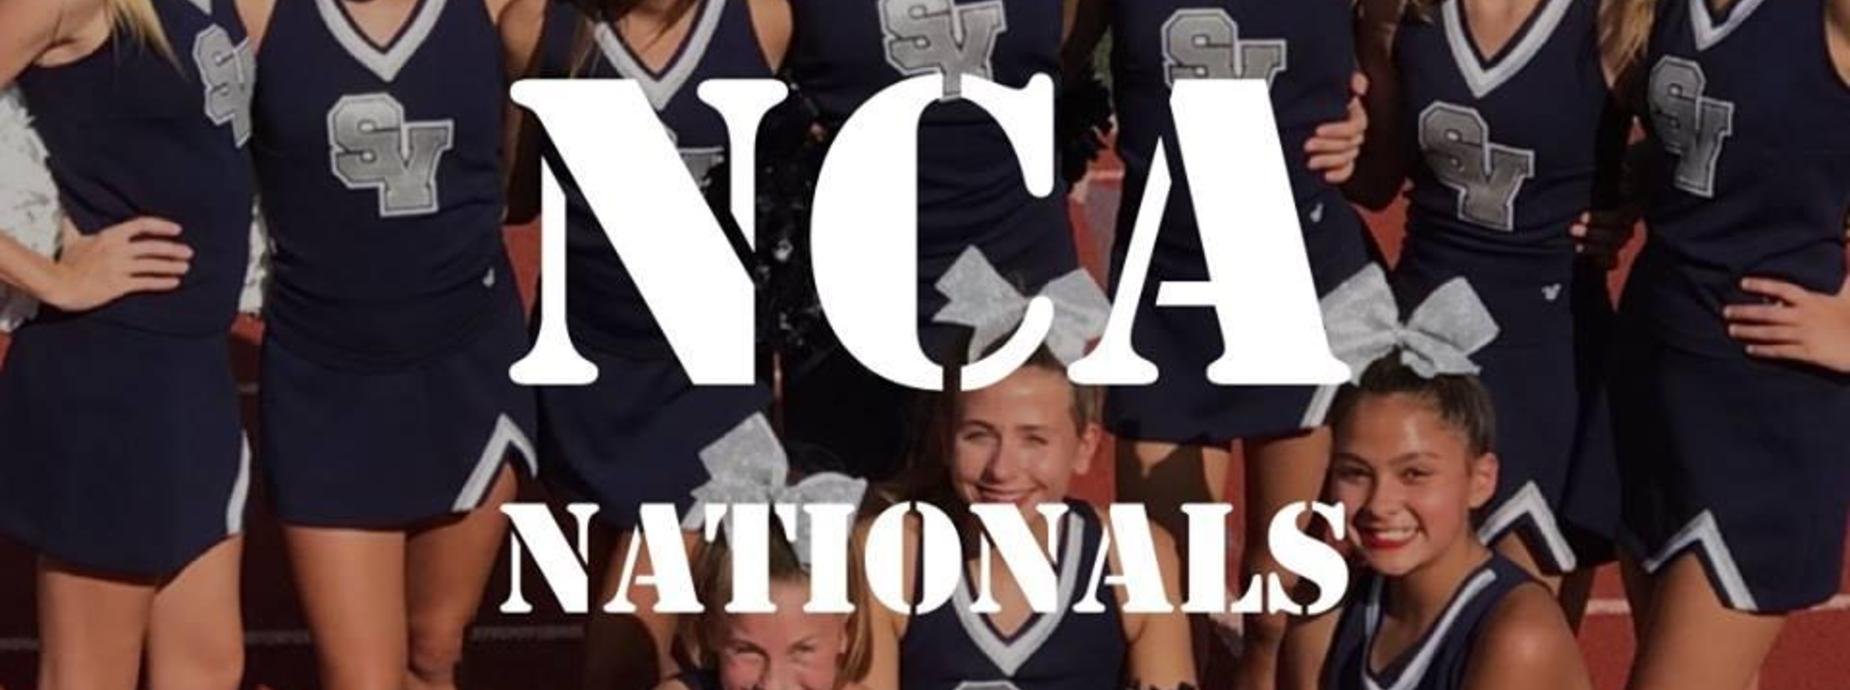 NCA Nationals